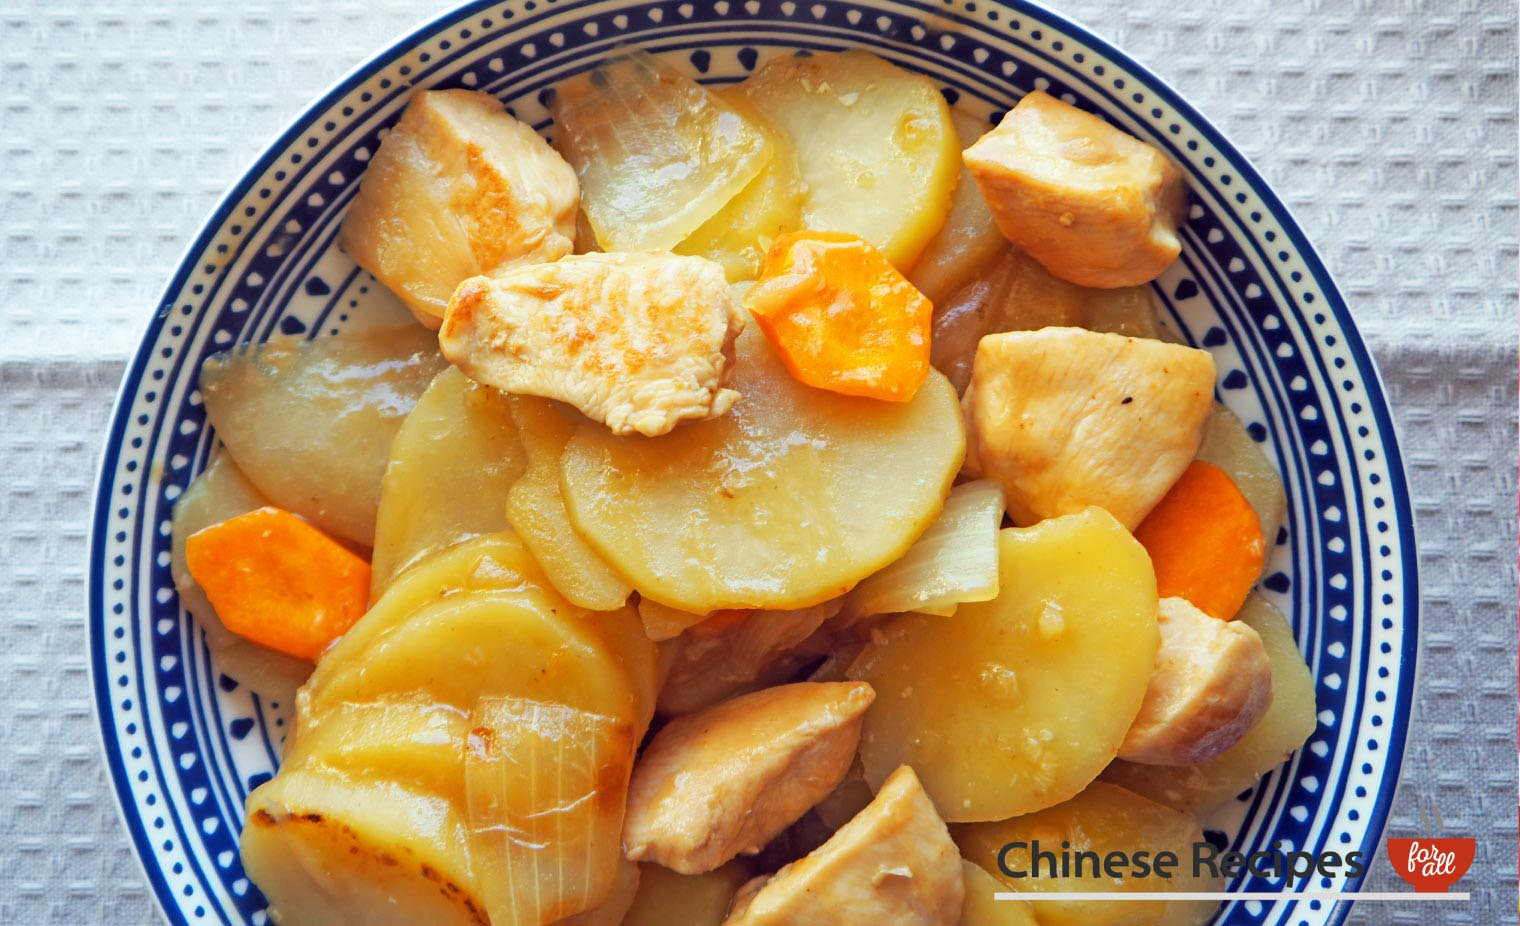 Braised Chicken and Potatoes - Chinese Recipes For All